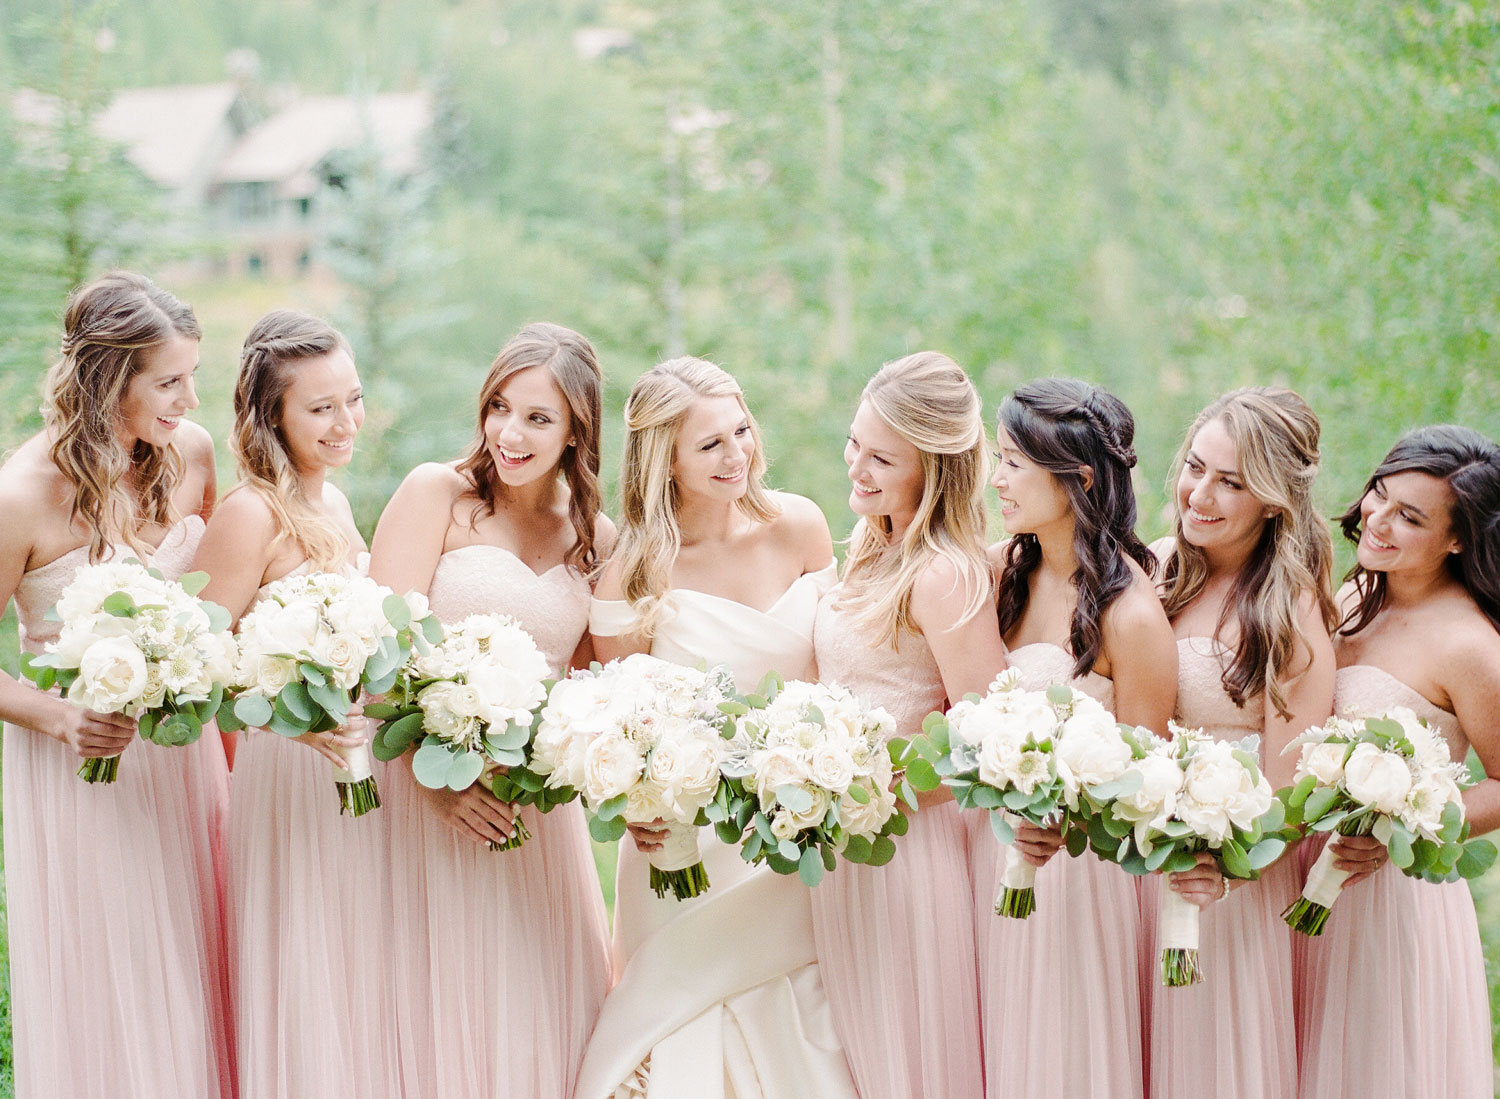 Bridesmaids - A Black Tie Rocky Mountain Destination Wedding